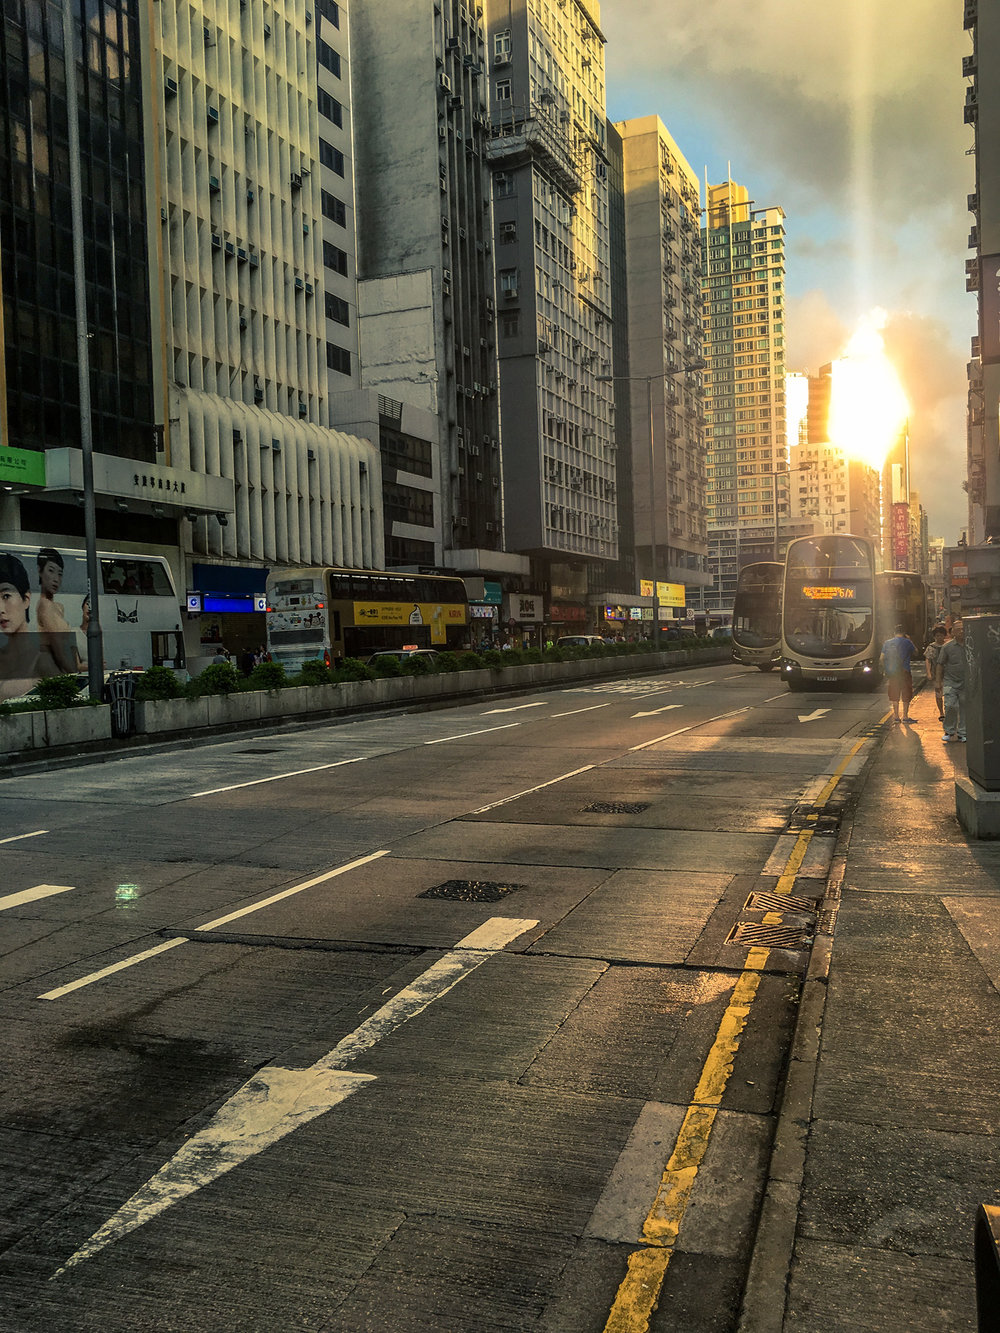 Streets of Hong Kong, featuring a few double decker buses